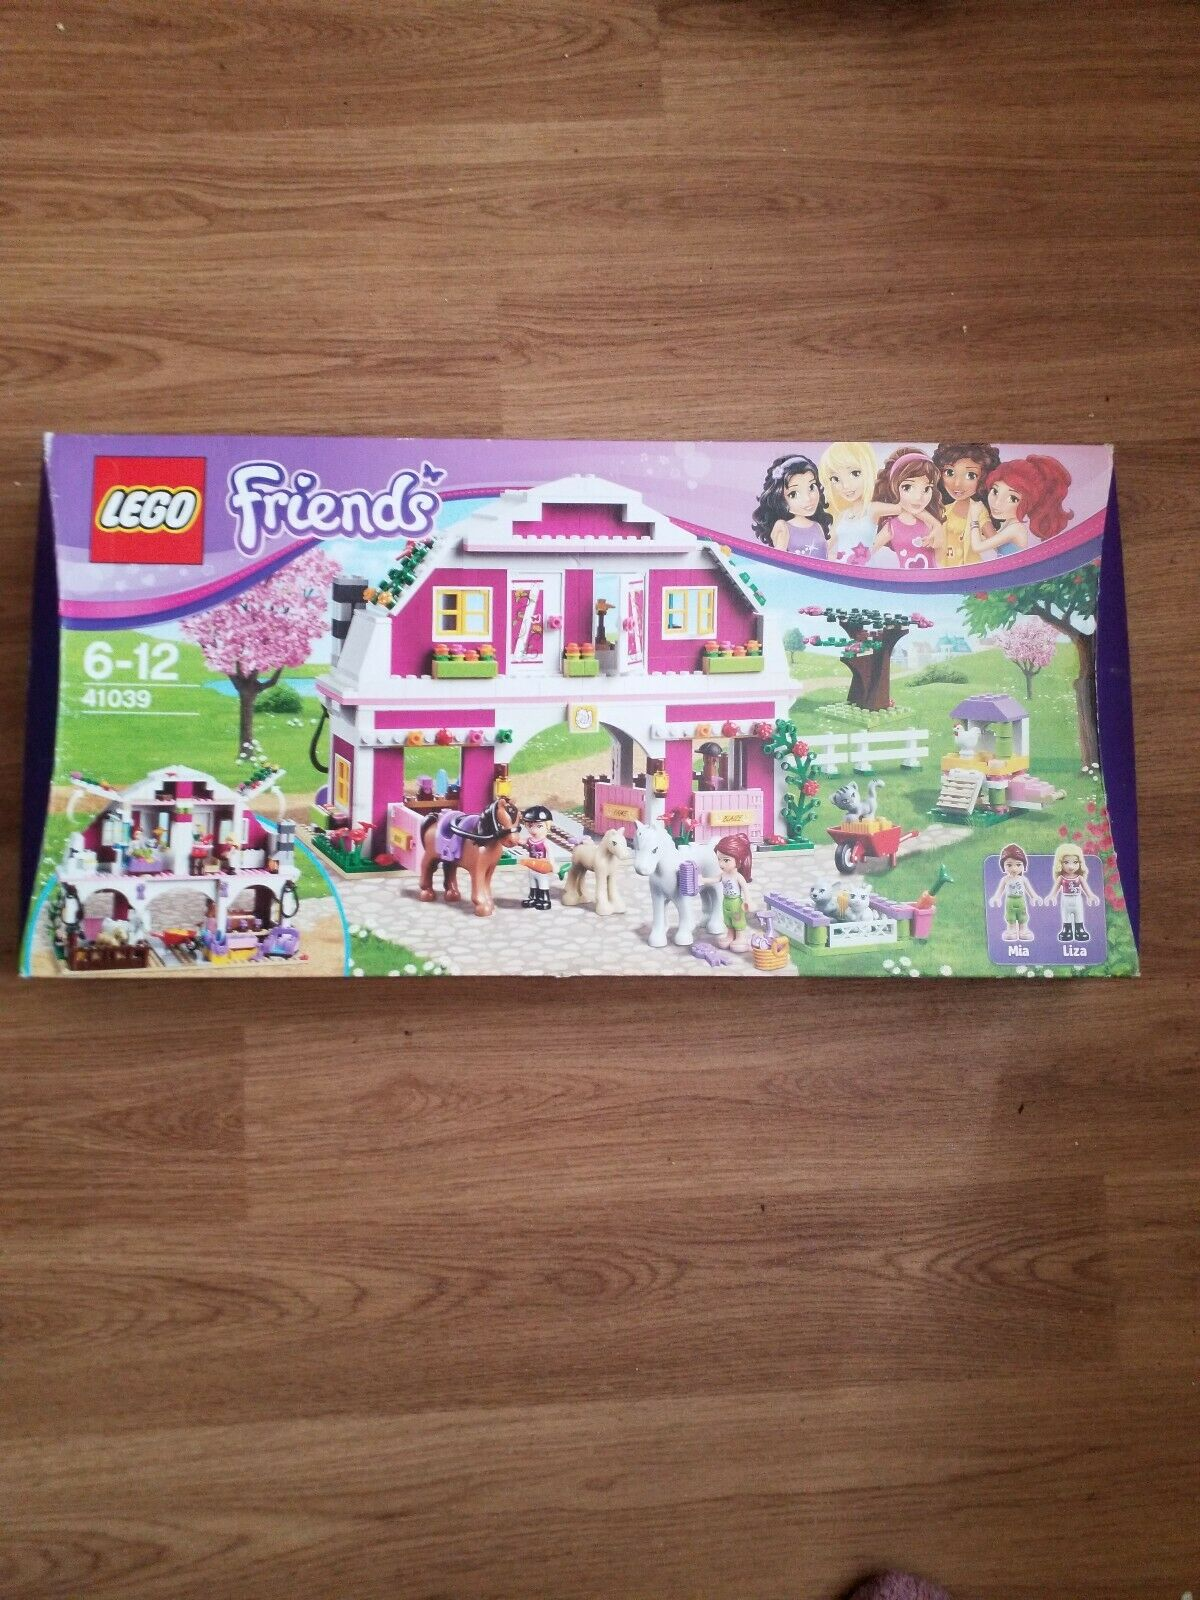 LEGO FRIENDS 41039 SUNSHINE RANCH AGE 6-12 BRAND NEW IN BOX RETIRED SET